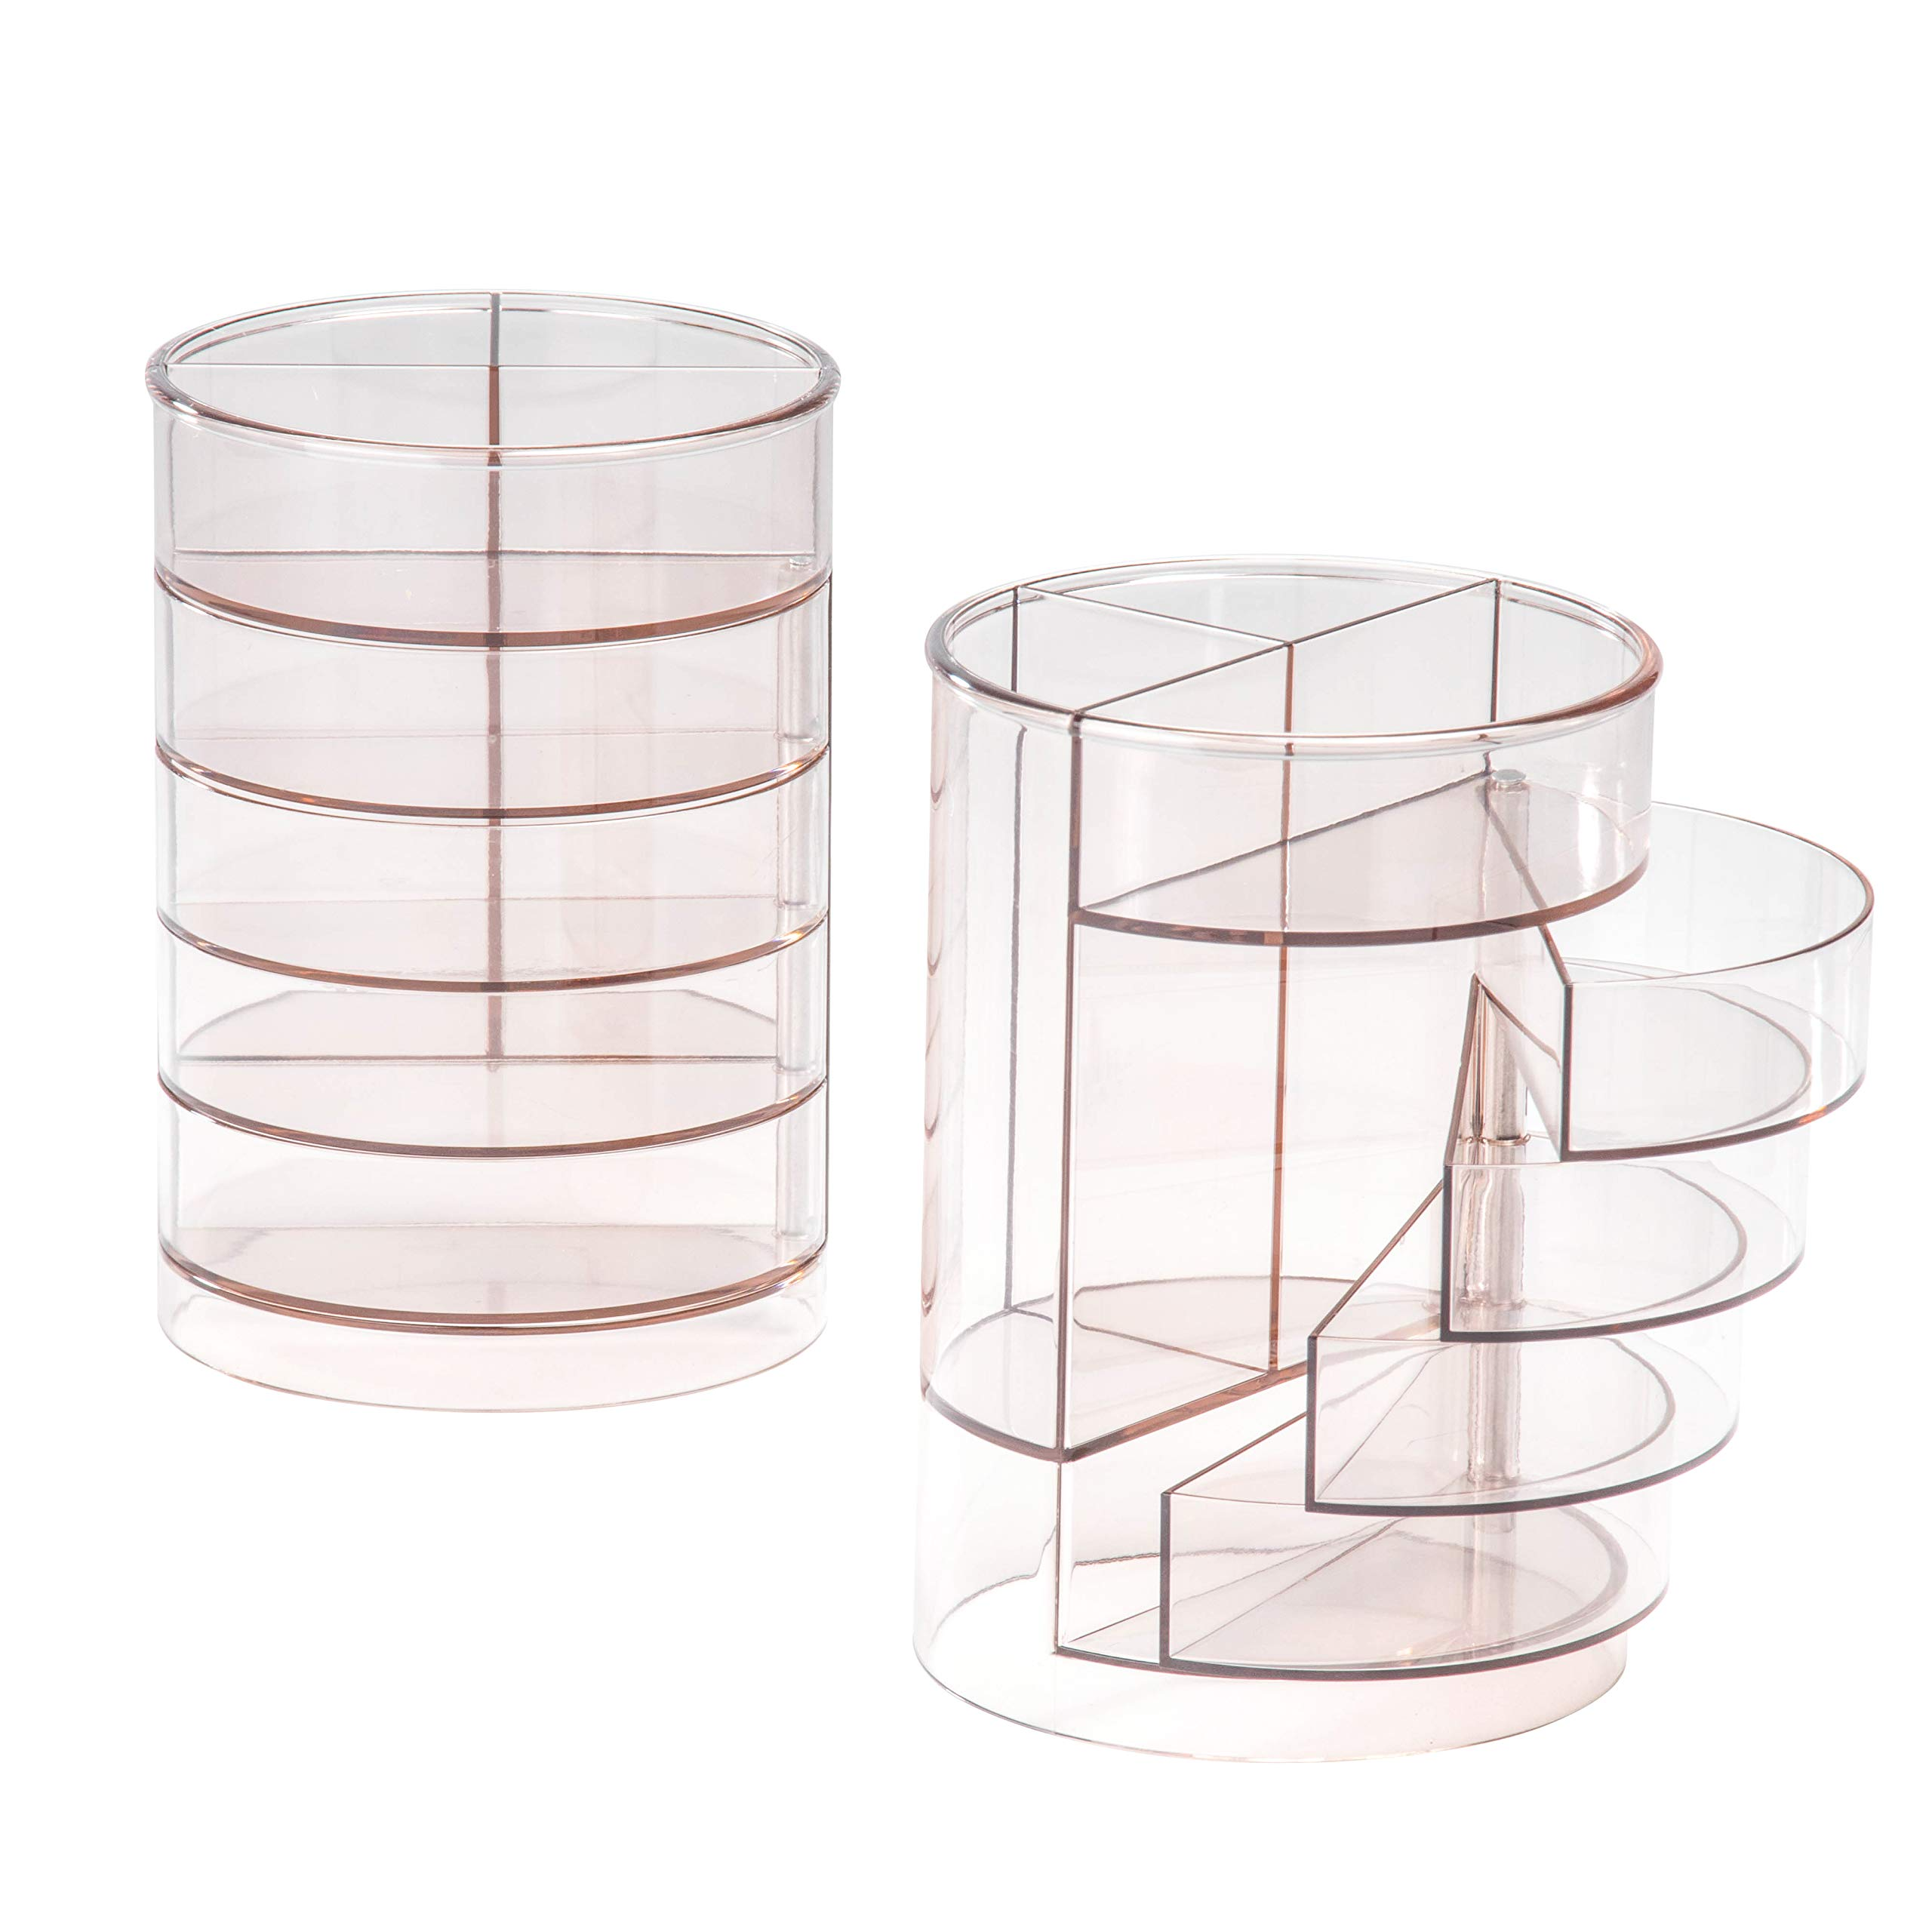 7 Compartment Stationery Organizer - 2-Pack Acrylic Pen Holder, Desk Organization, Desk Caddy, Modern Office Accessories, Clear, 3.5 x 5.1 Inches